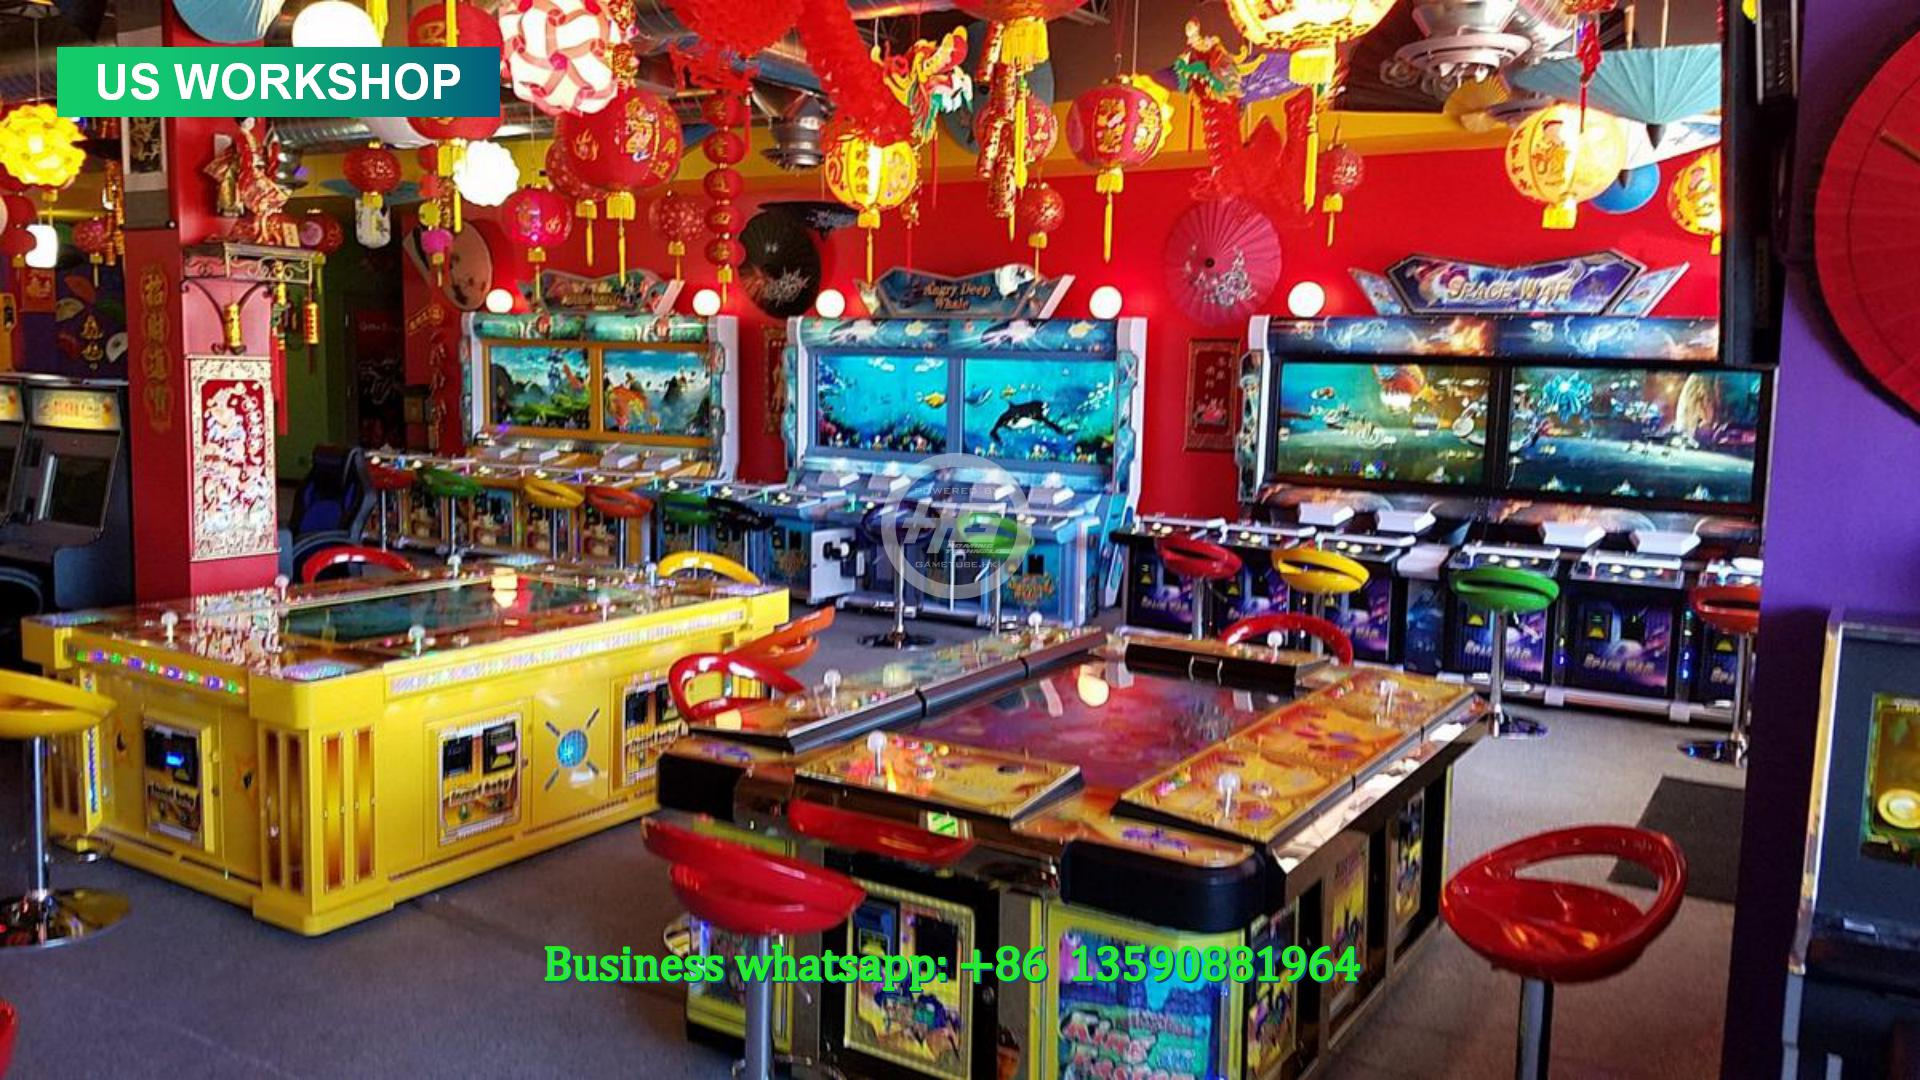 IGS Original Fishing Game,Ocean King 3 Plus,Fish Table Game For Sale,Adult Arcade Game Room,Fish Arcade Game Room